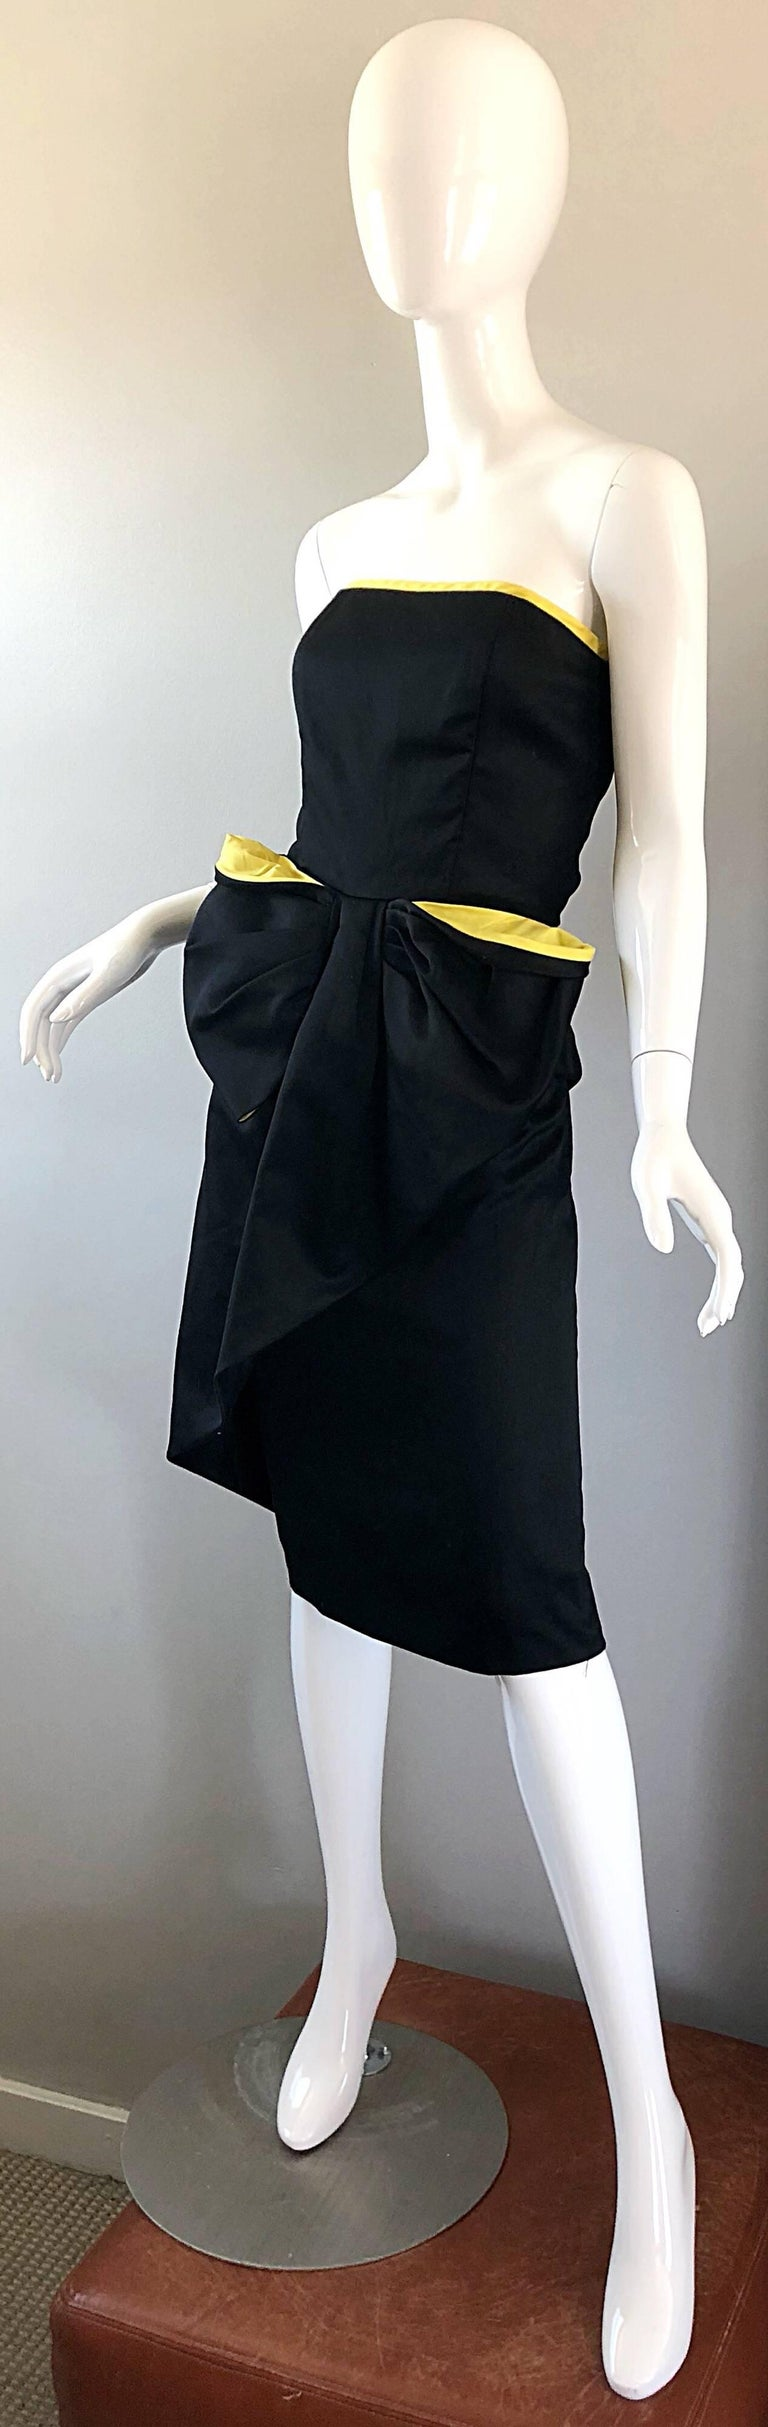 Vintage VIctor Costa Black + Yellow Avant Garde 1980s Strapless Cotton Dress In Excellent Condition For Sale In Chicago, IL